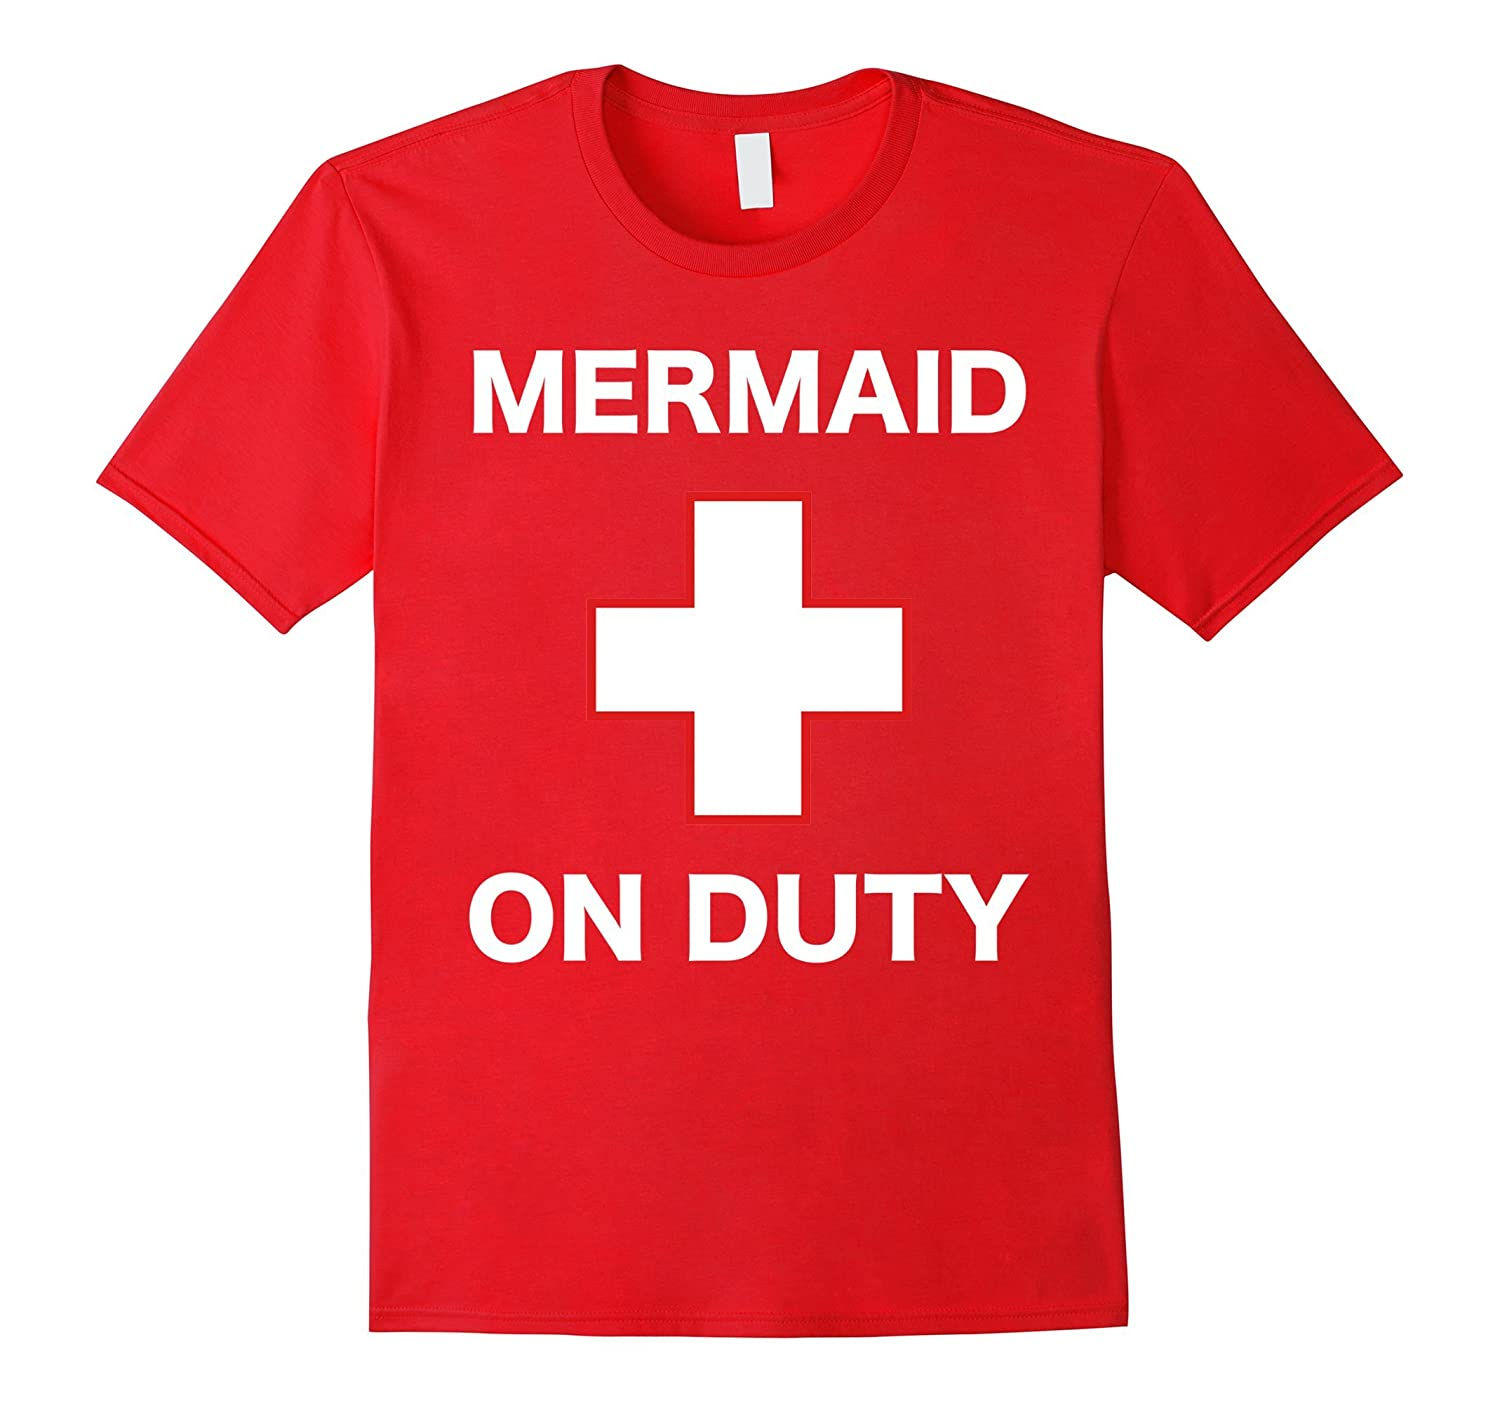 Mermaid On Duty Funny T-Shirt For Lifeguard At Work-PL